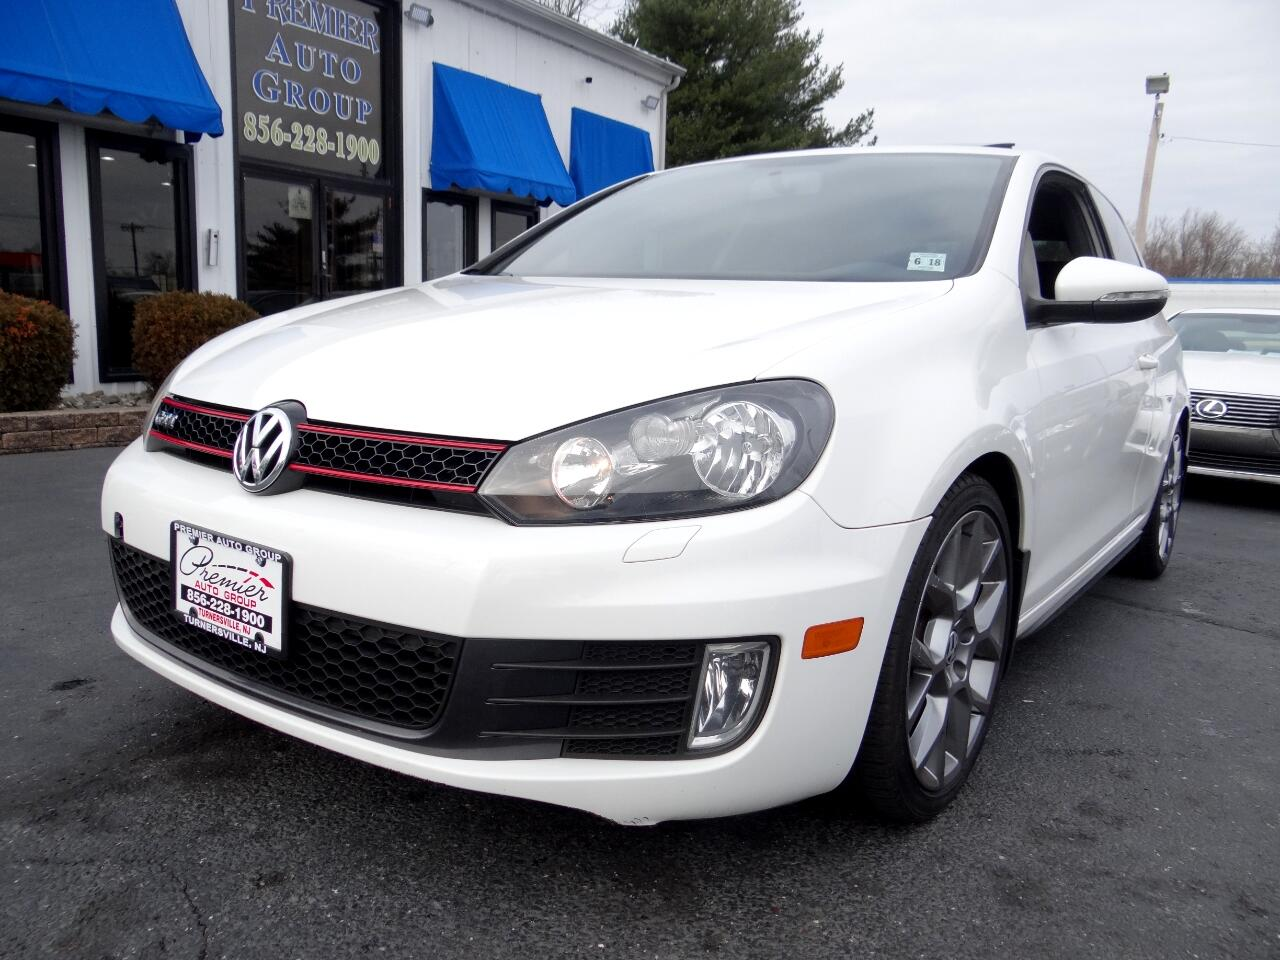 2013 Volkswagen New GTI 2.0T Coupe